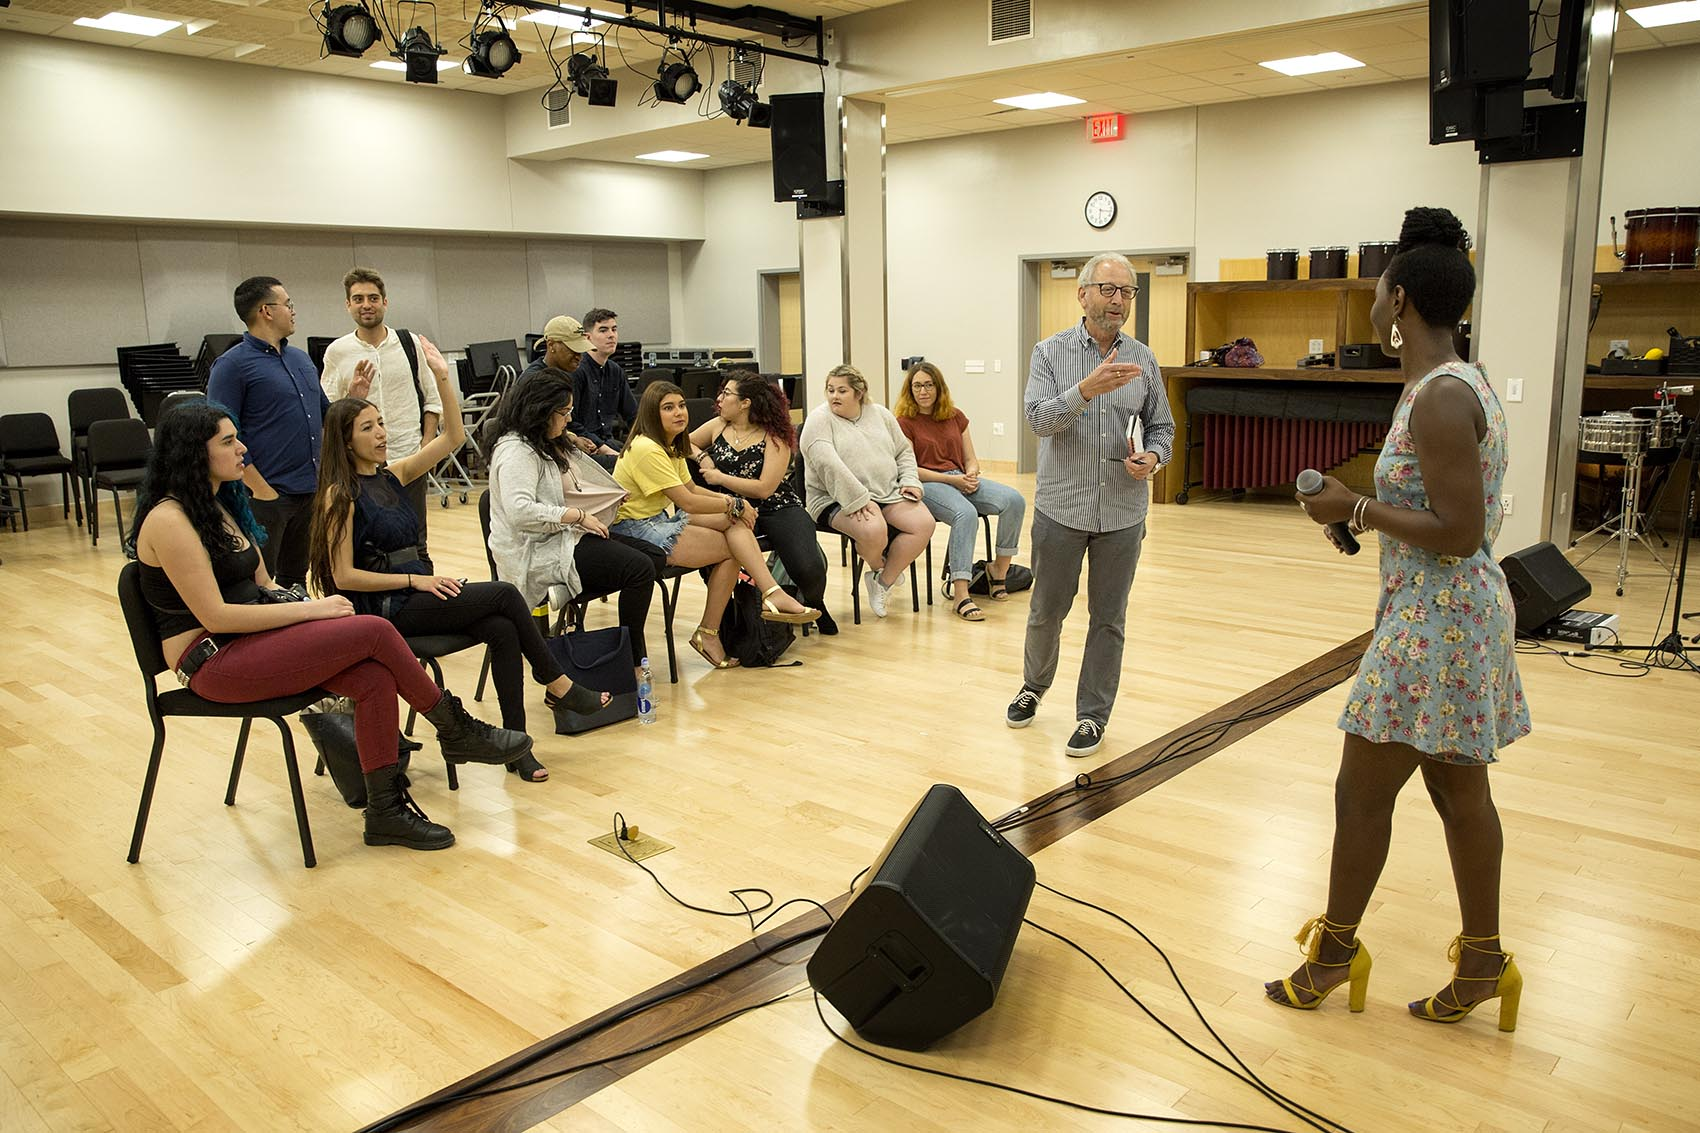 Professor Jeff Dorenfeld gives Berklee students lessons on what to expect in a festival performance environment. (Robin Lubbock/WBUR)